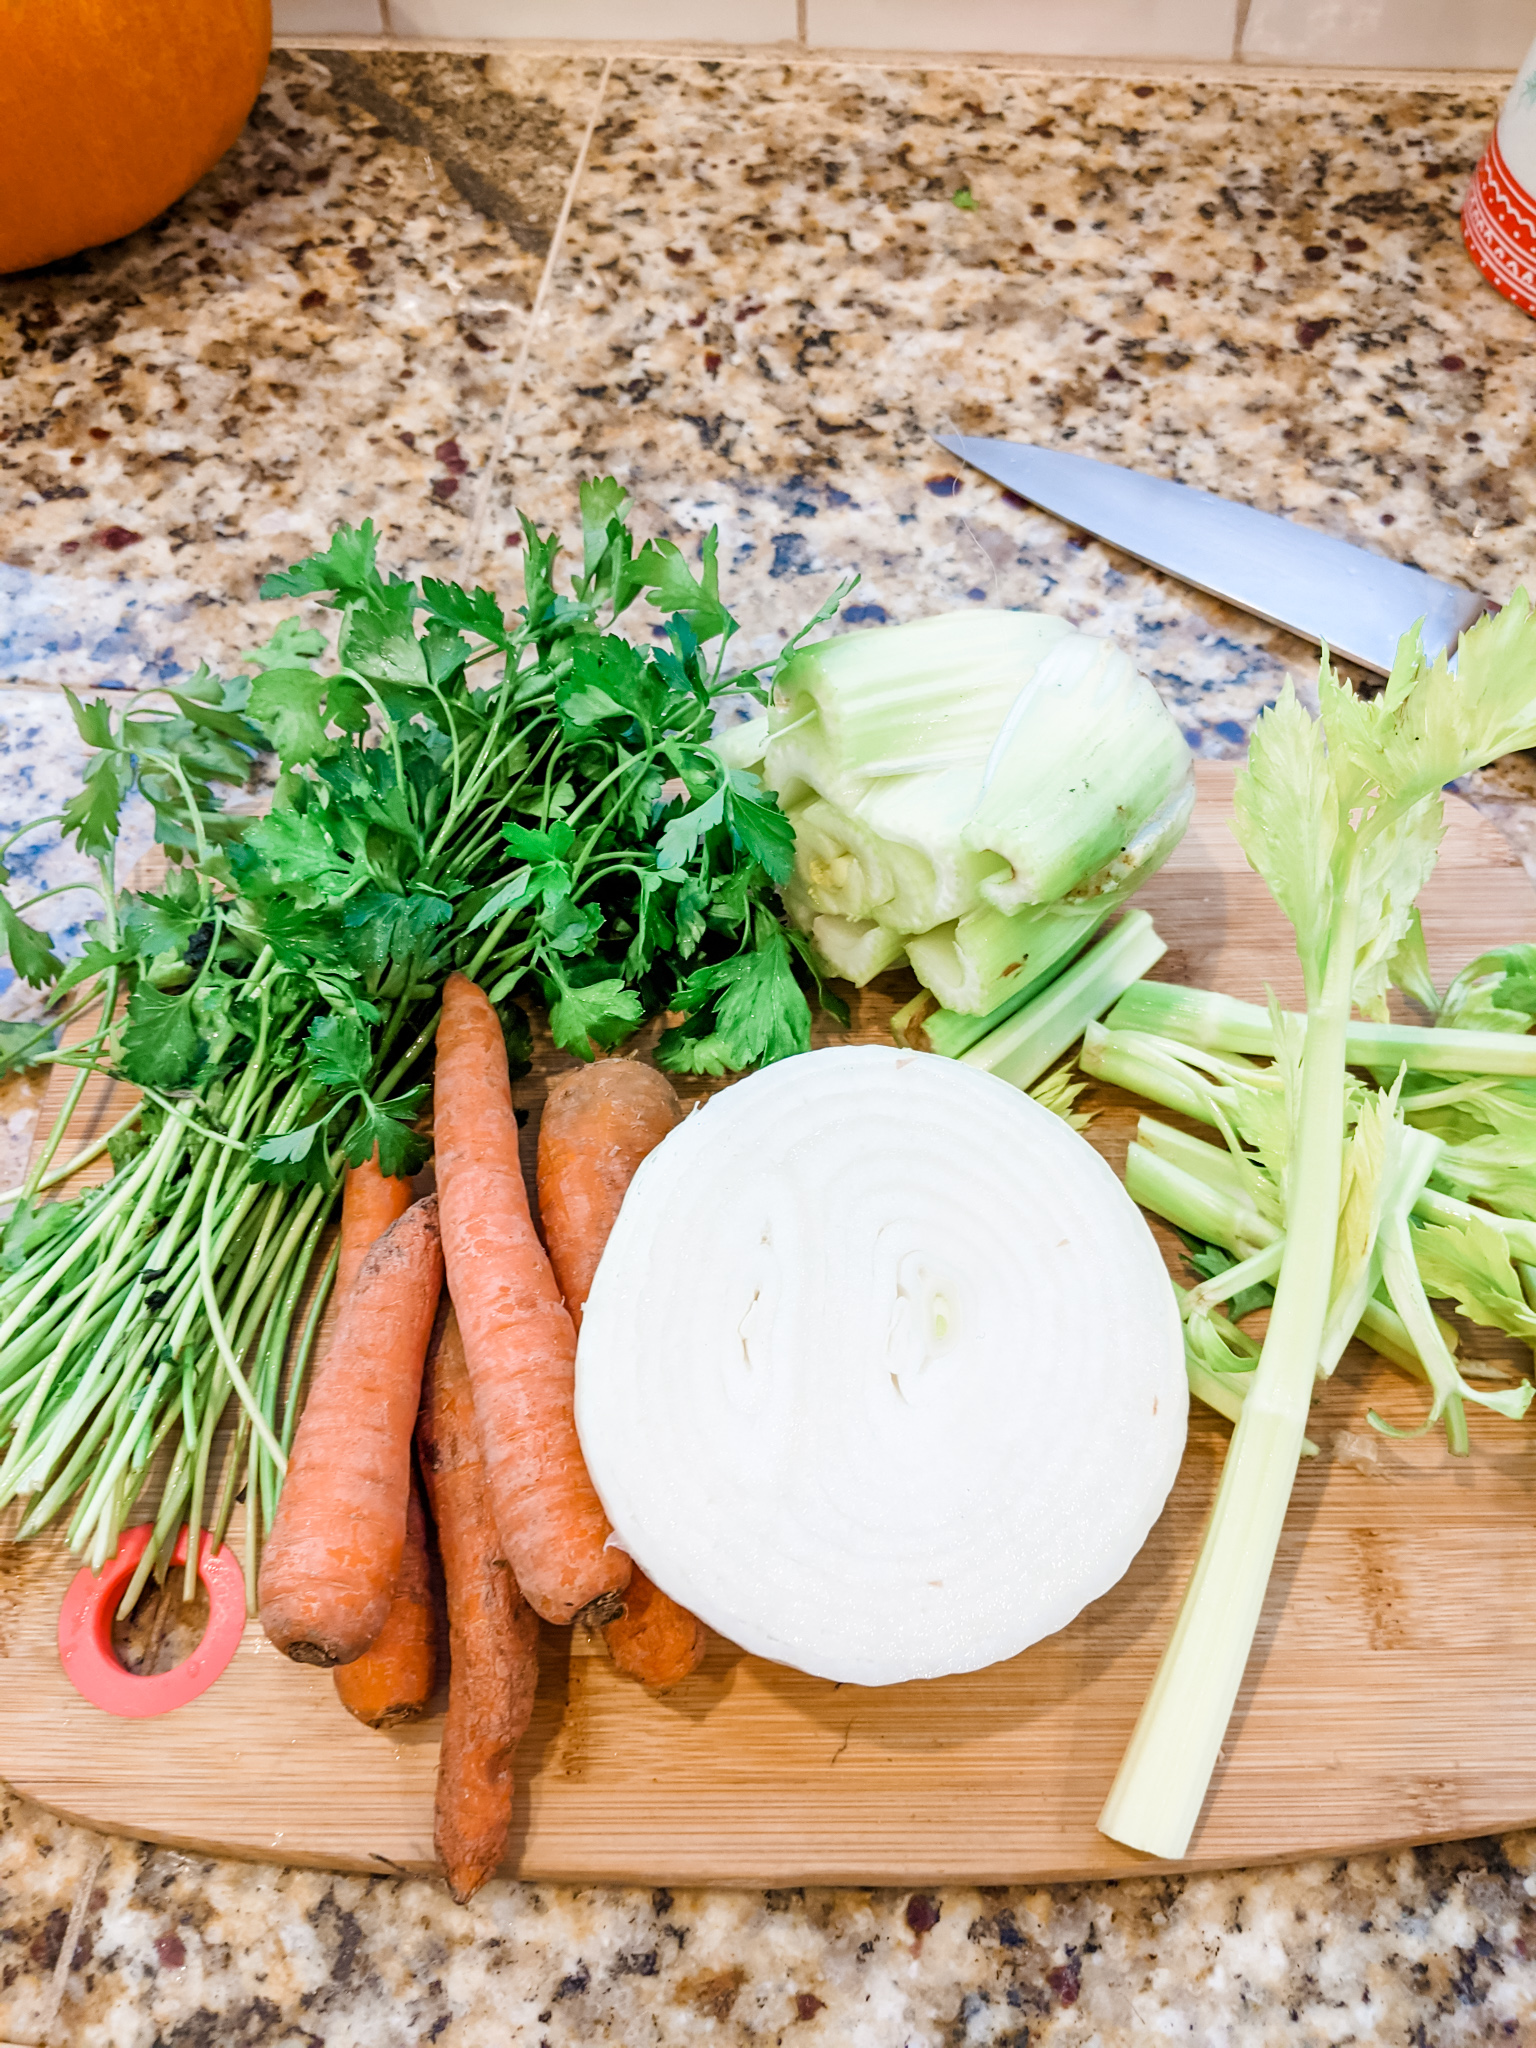 The veggies and scraps for the stock sitting on a wooden cutting board